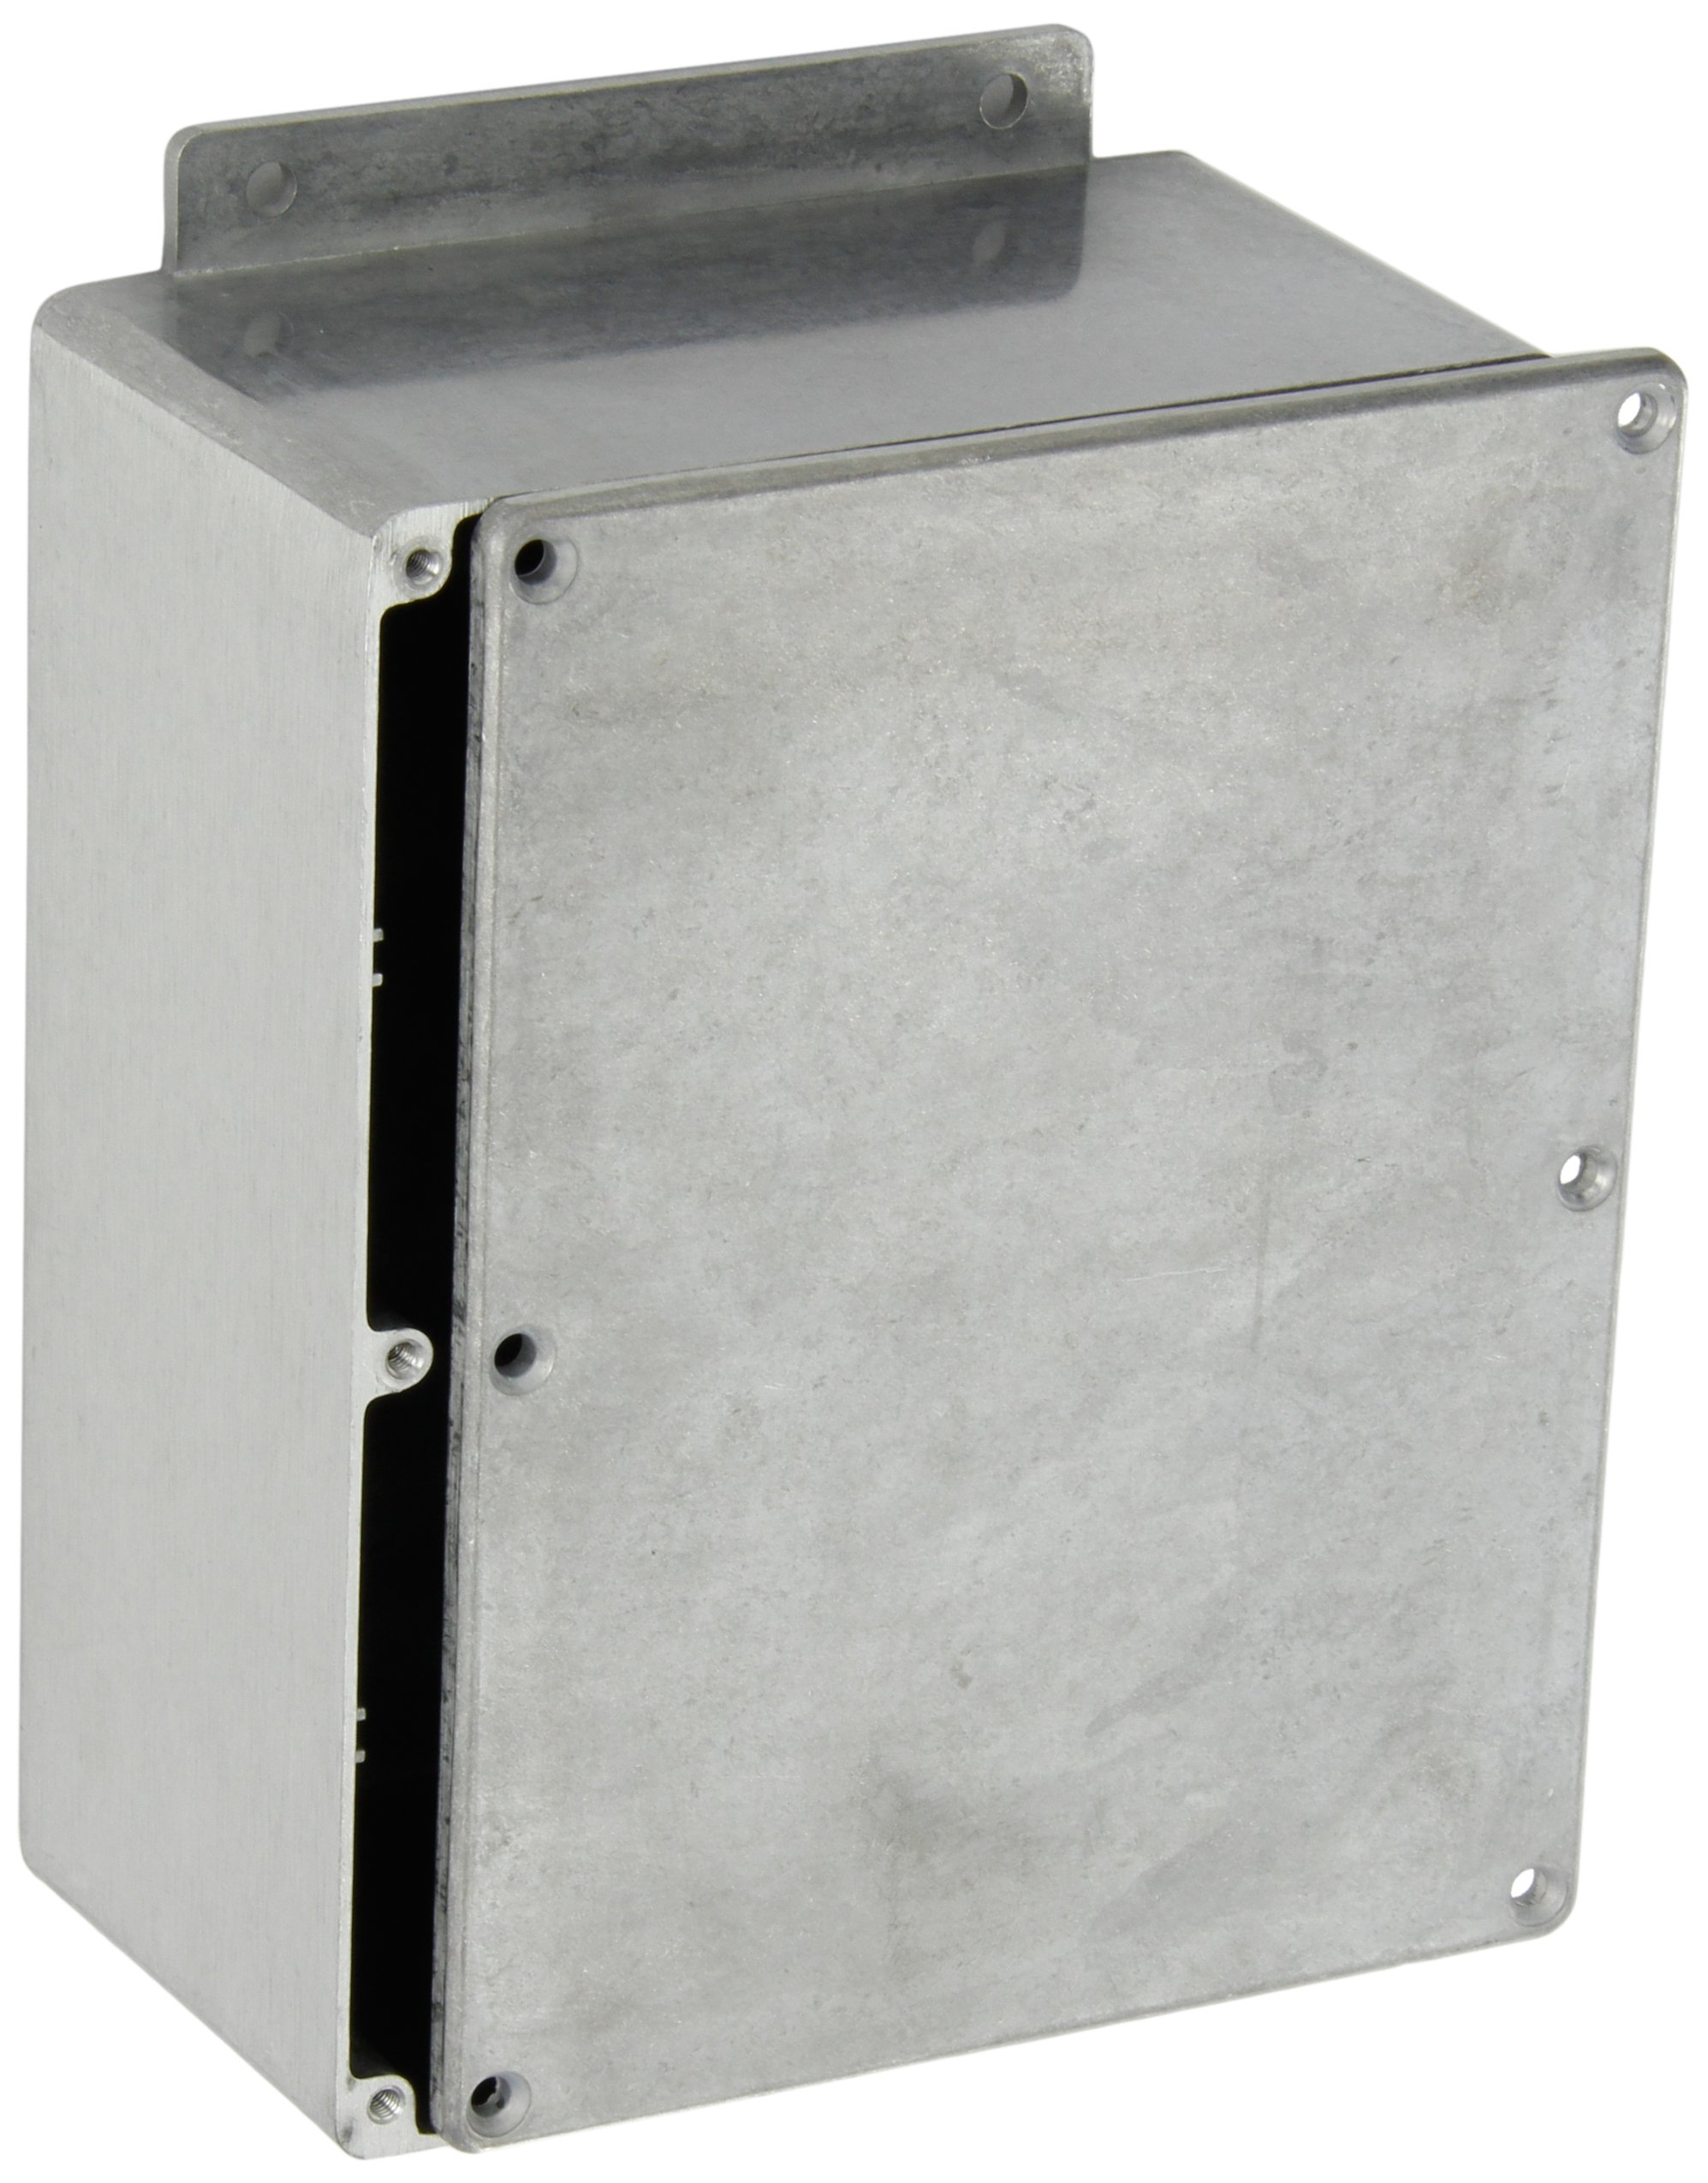 BUD Industries CN-6708 Die Cast Aluminum Enclosure with Mounting Bracket, 6-1/2'' Length x 5'' Width x 3-3/64'' Height, Natural Finish